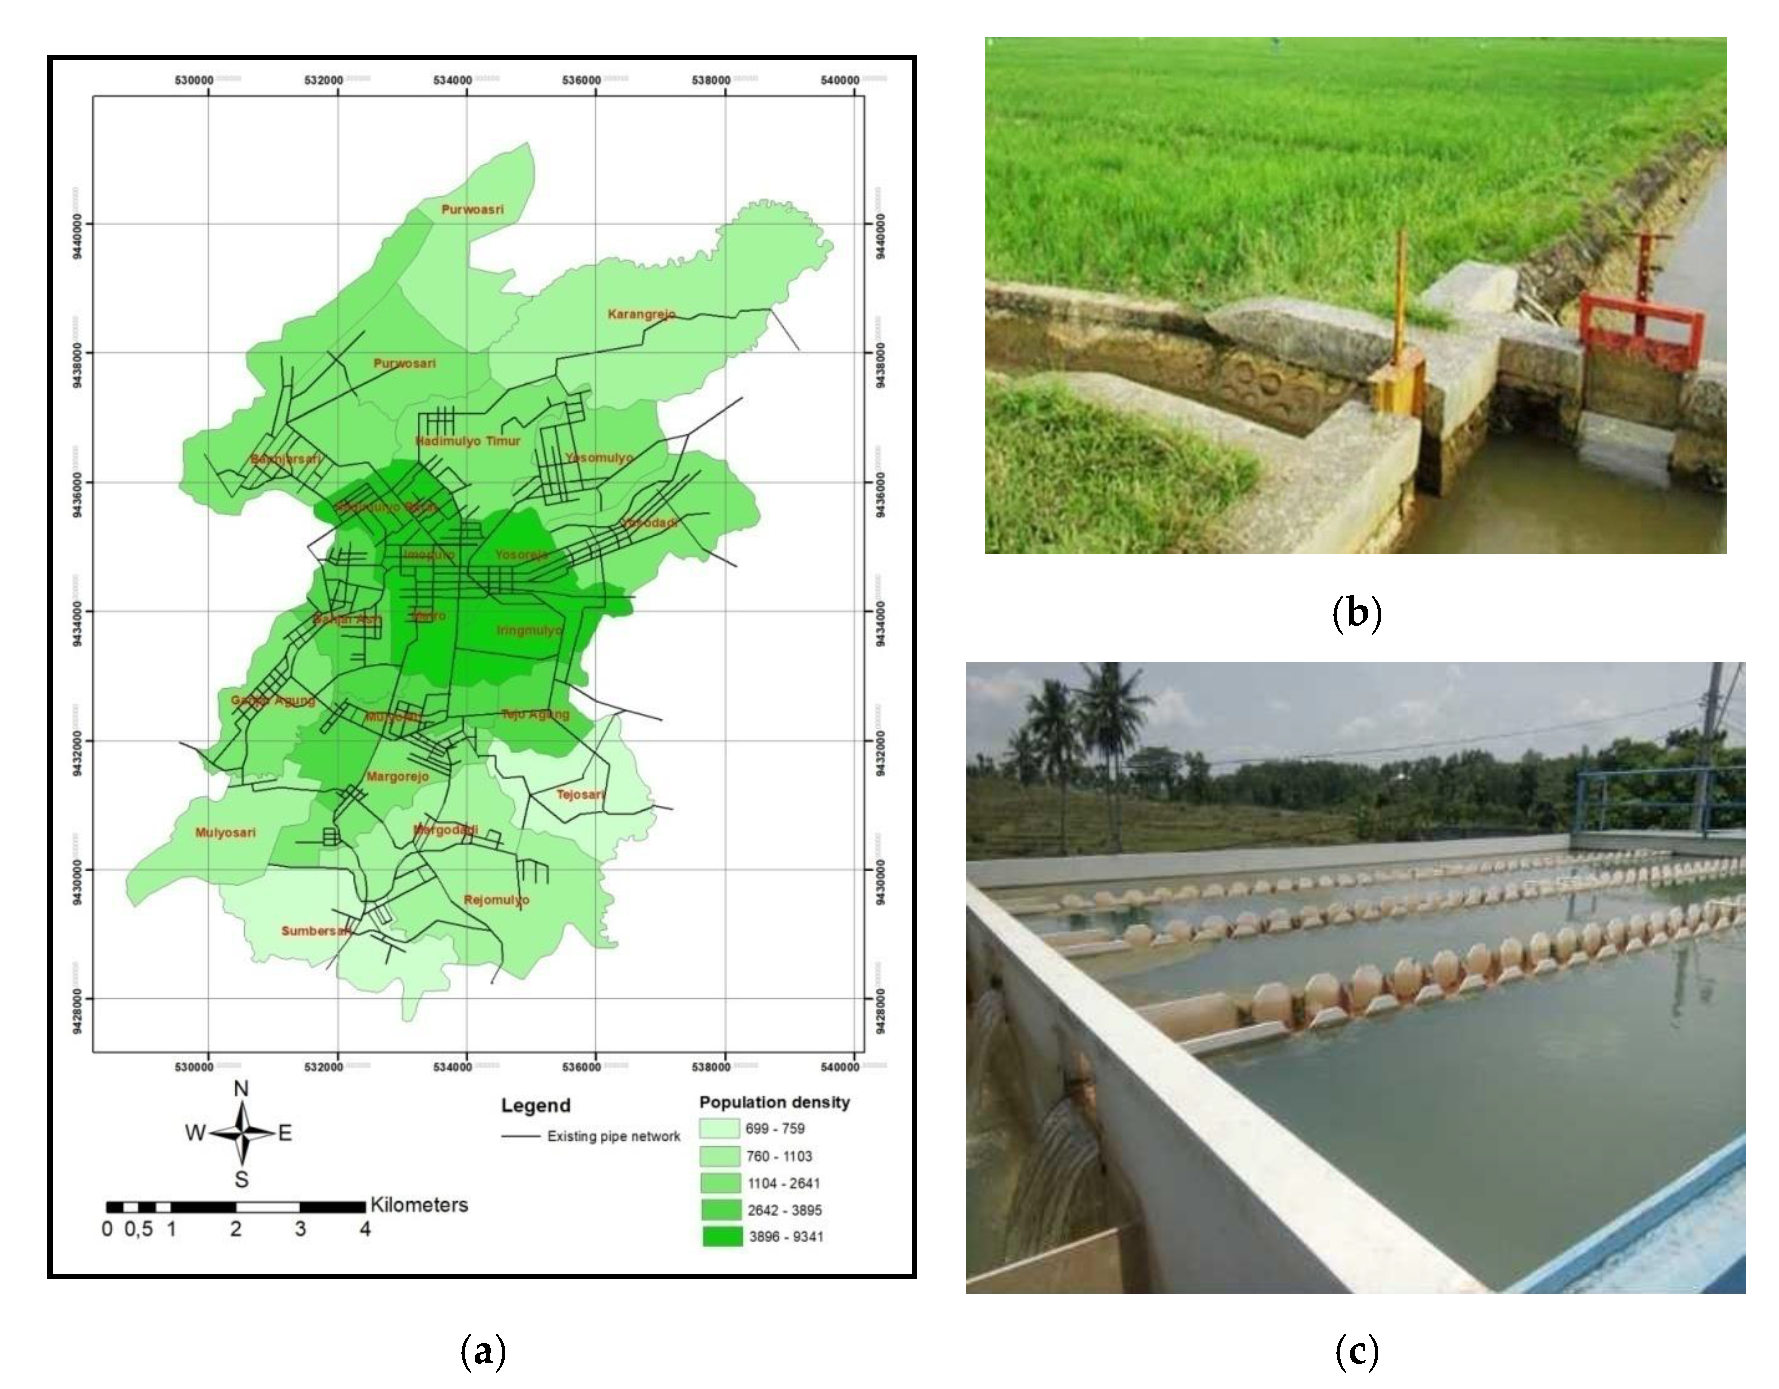 Sustainability Free Full Text Study On The Domestic Water Utilization In Kota Metro Lampung Province Indonesia Exploring Opportunities To Apply The Circular Economic Concepts In The Domestic Water Sector